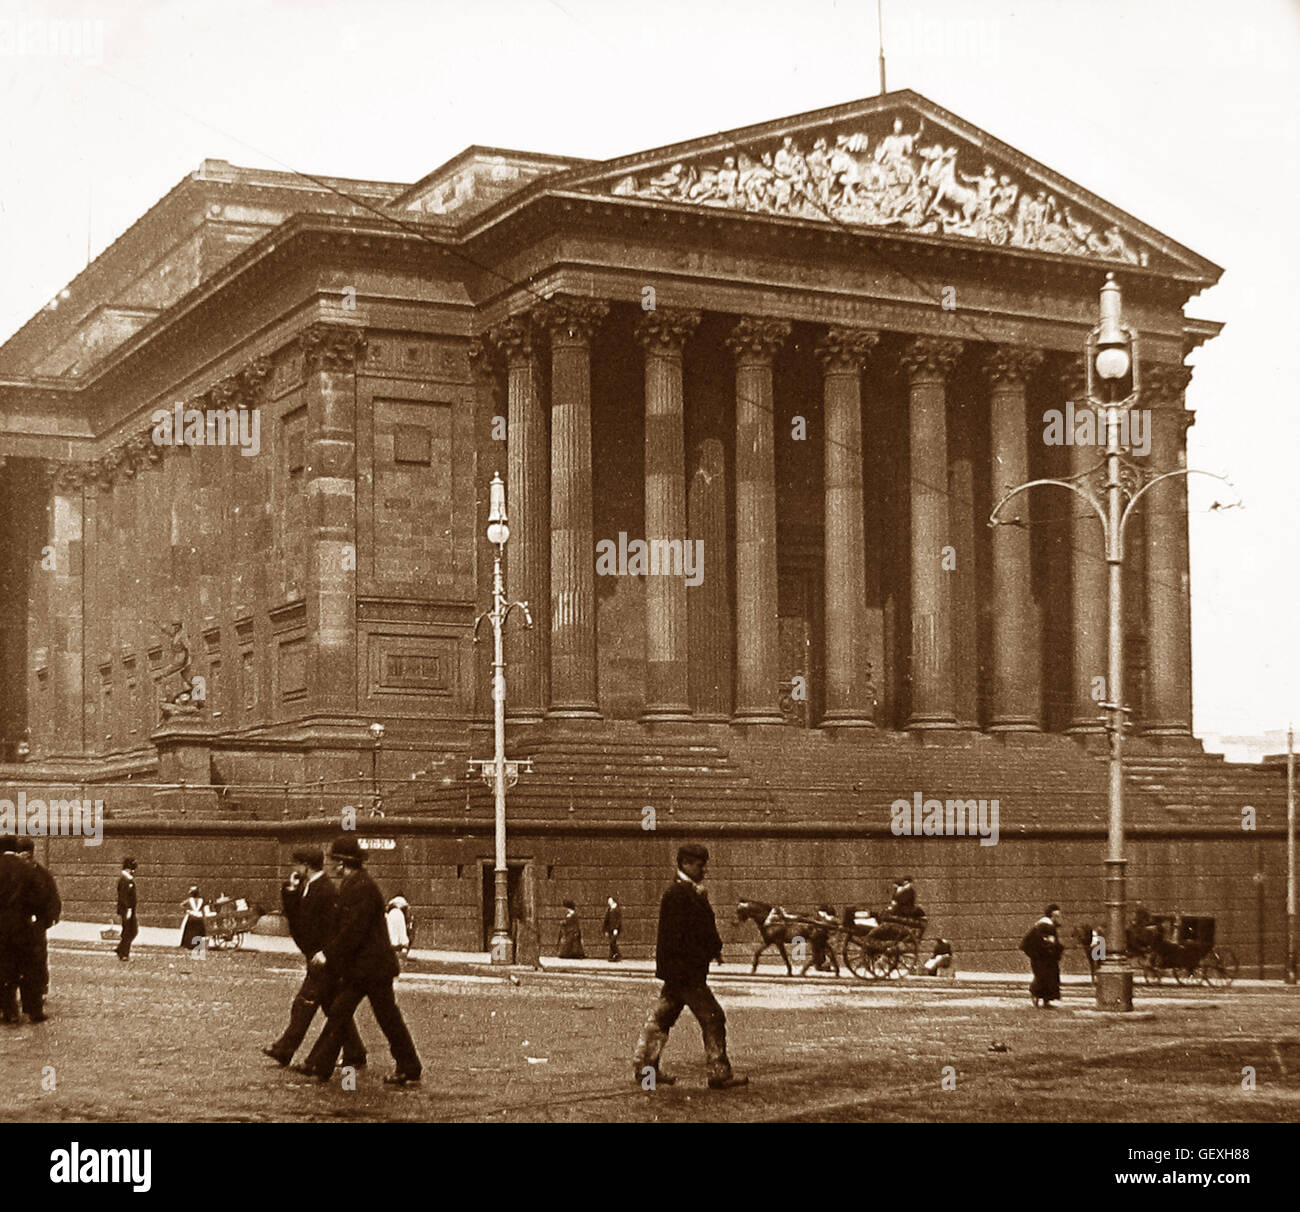 St. George's Hall, Liverpool - early 1900s - Stock Image